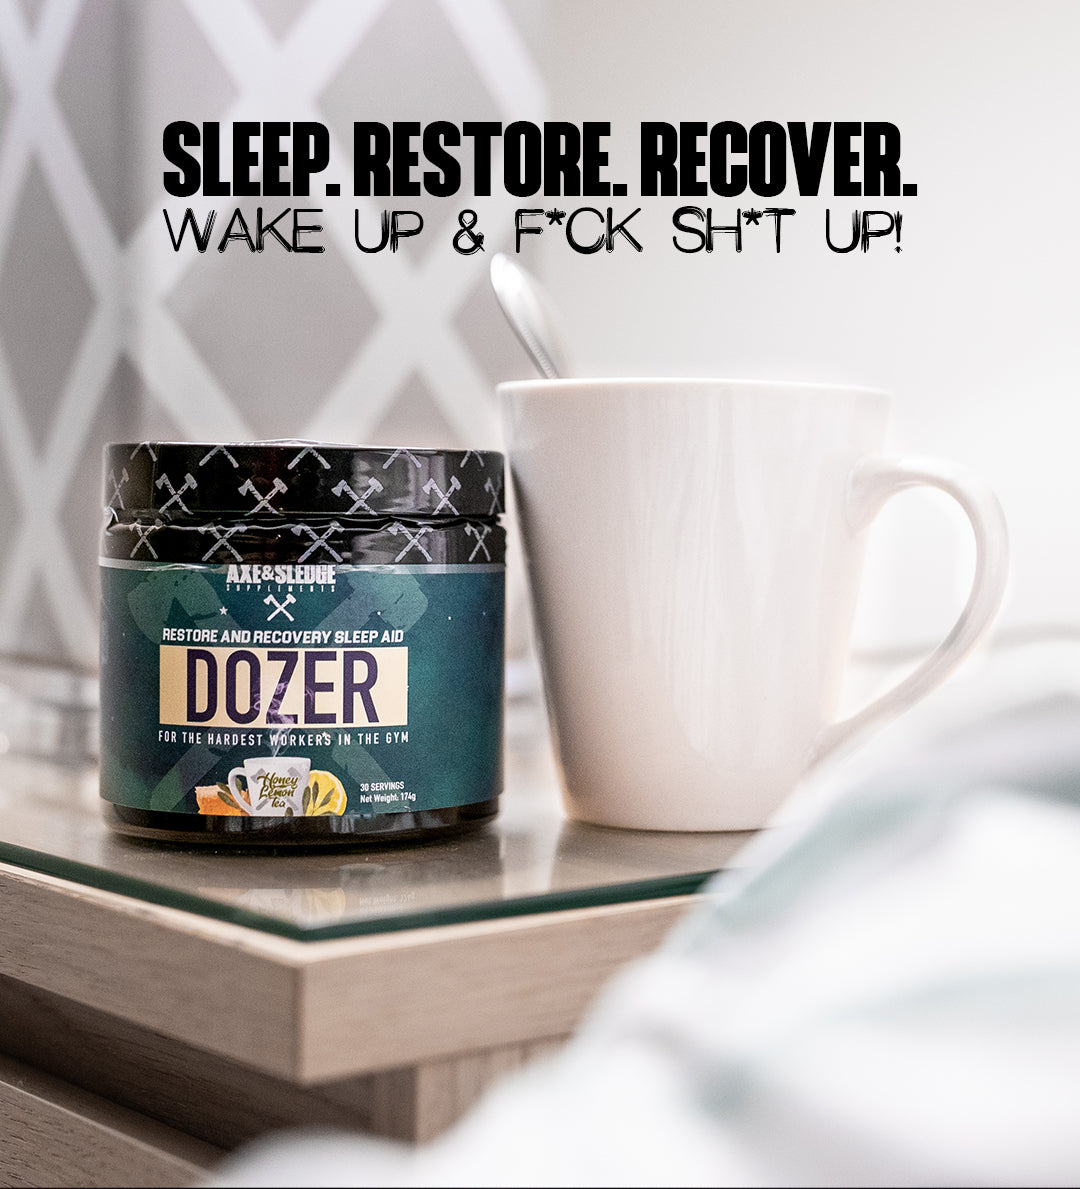 Axe & Sledge Dozer 30srv Honey Lemon Tea